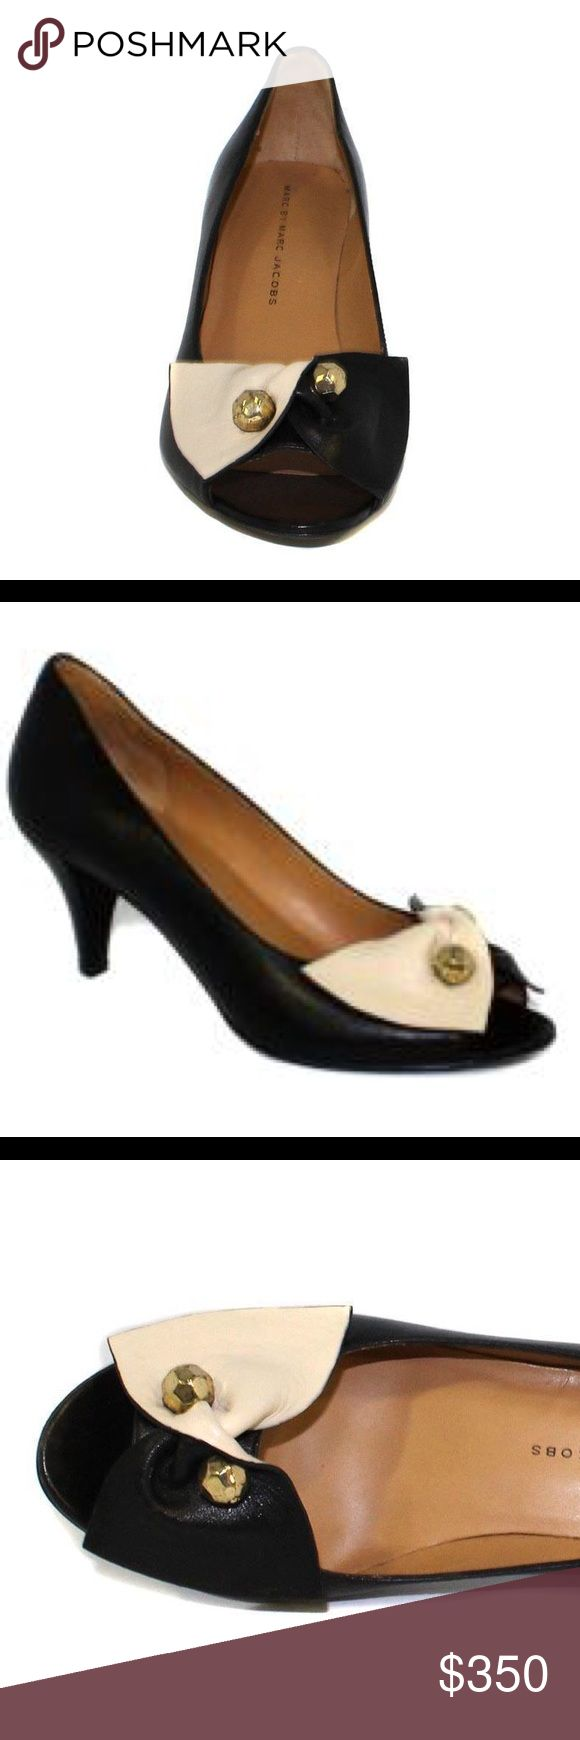 ISO Marc Jacobs 605641 Milk Black and Gold Pump ISO Marc Jacobs 605641 Milk Black and Gold Pump. My favorite heels, looking for a new(er) pair. Marc Jacobs Shoes Heels